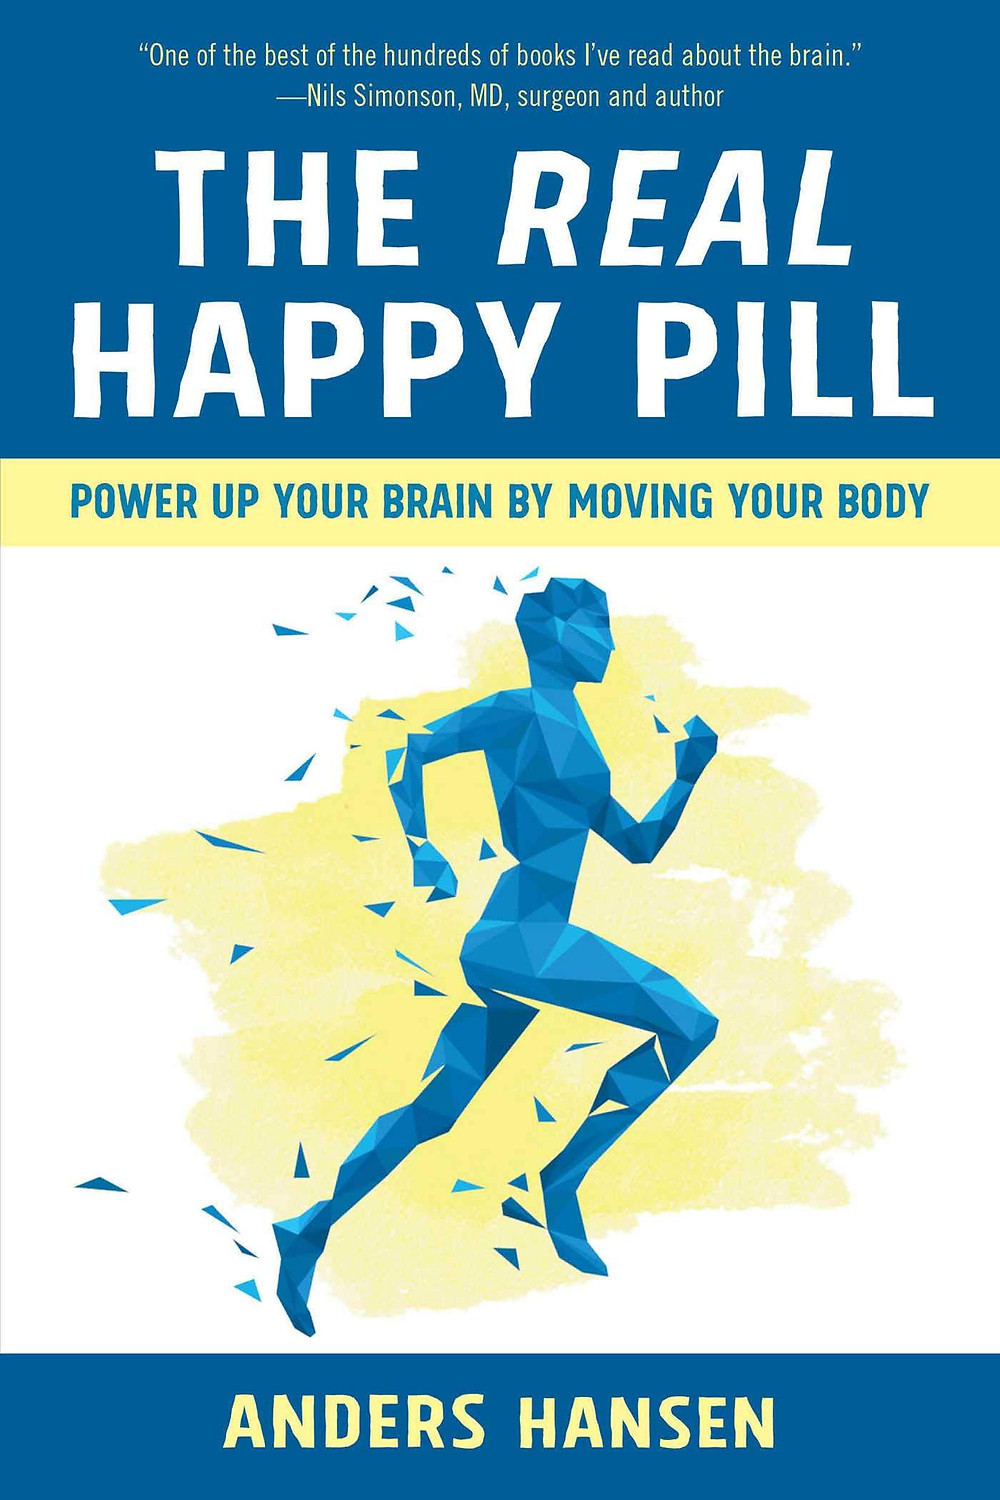 Front cover of 'The Real Happy Pill: Power Up Your Brain by Moving Your Body' by Anders Hansen